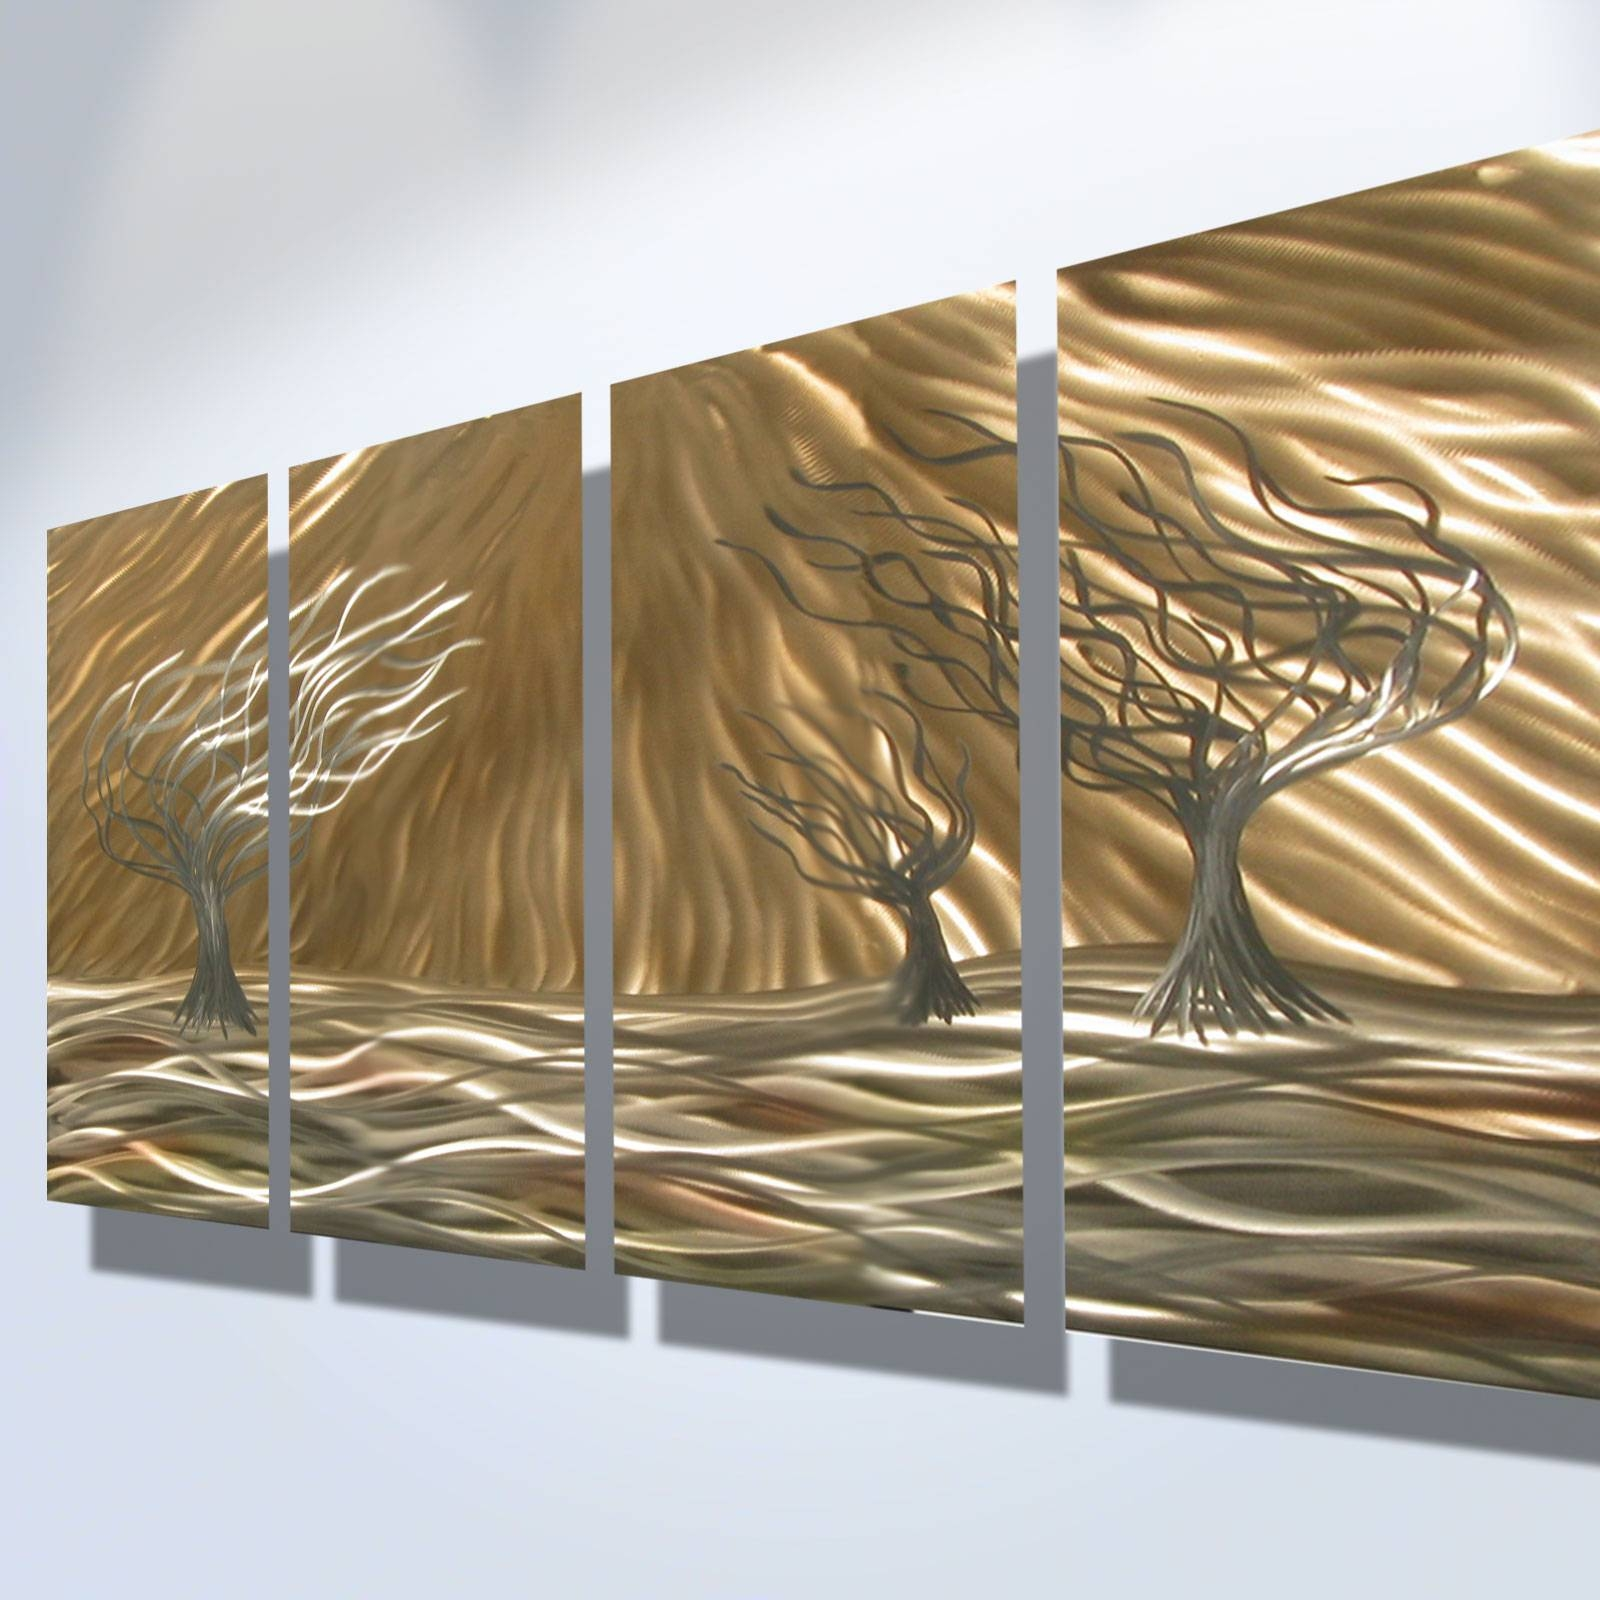 3 Trees 4 Panel – Abstract Metal Wall Art Contemporary Modern Inside Latest Modern Abstract Metal Wall Art (Gallery 7 of 20)